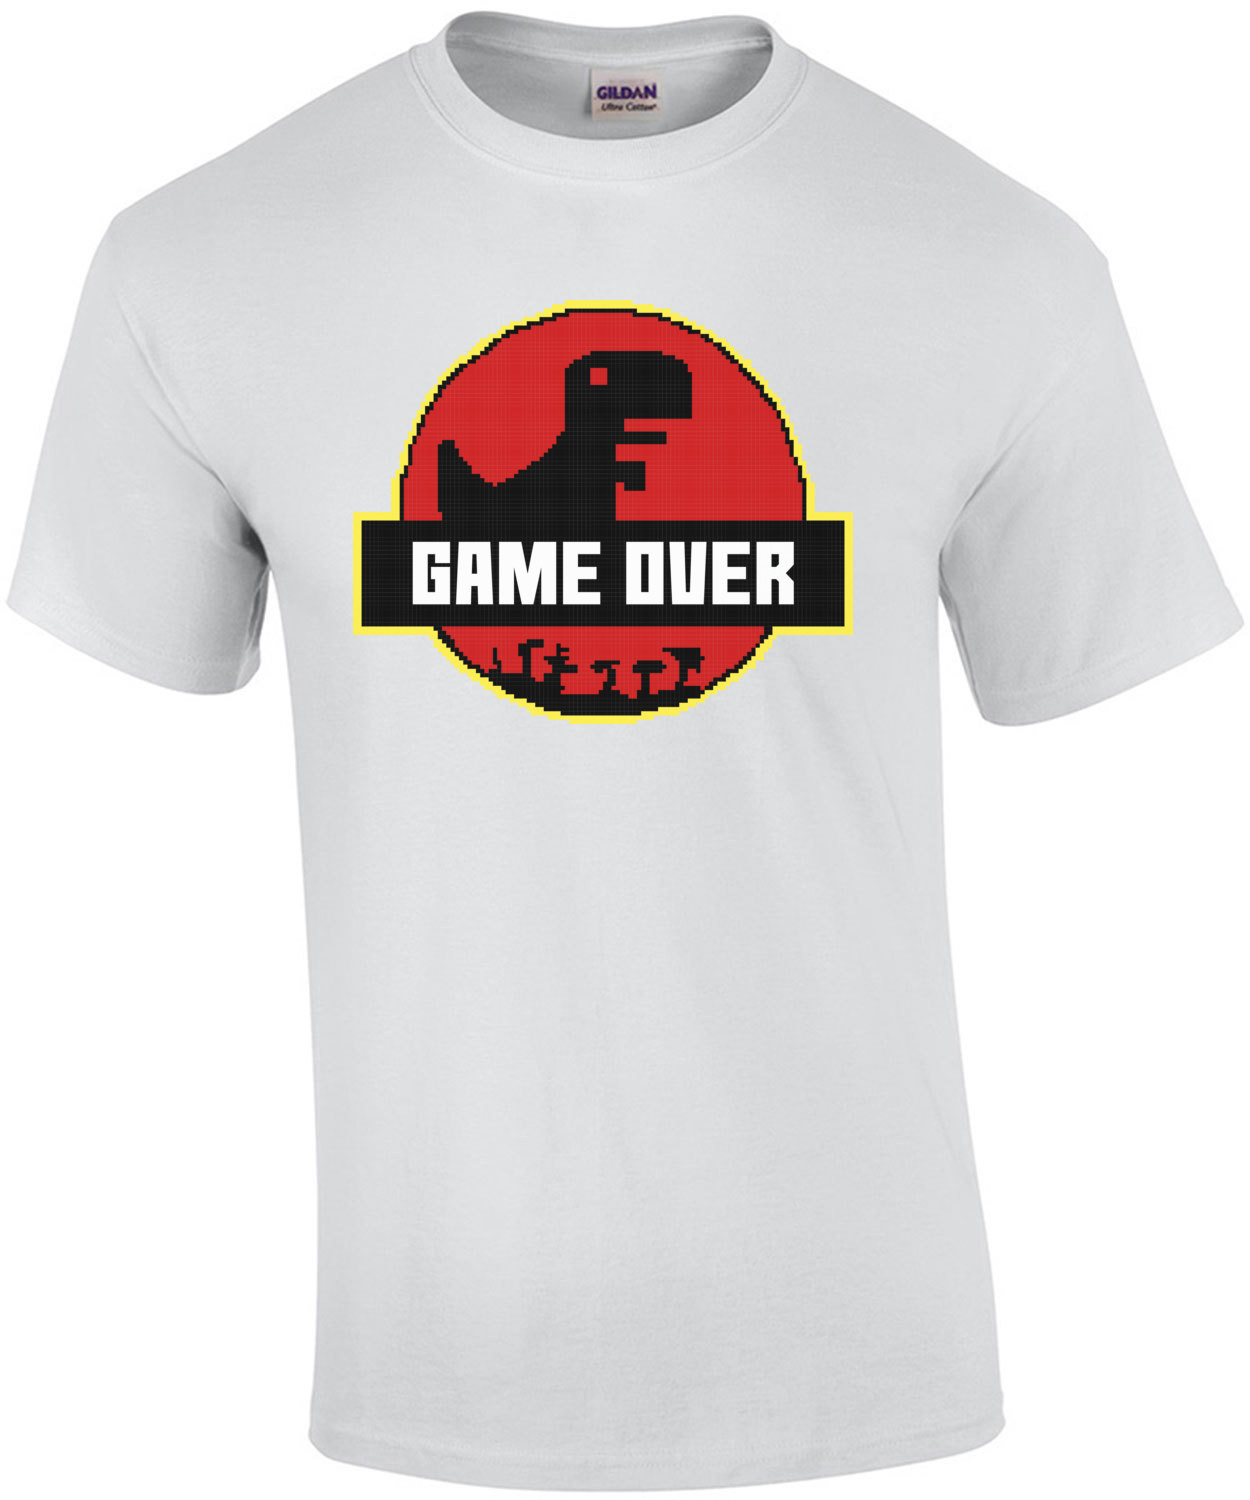 Game Over Retro Jurassic Park Style T-Shirt